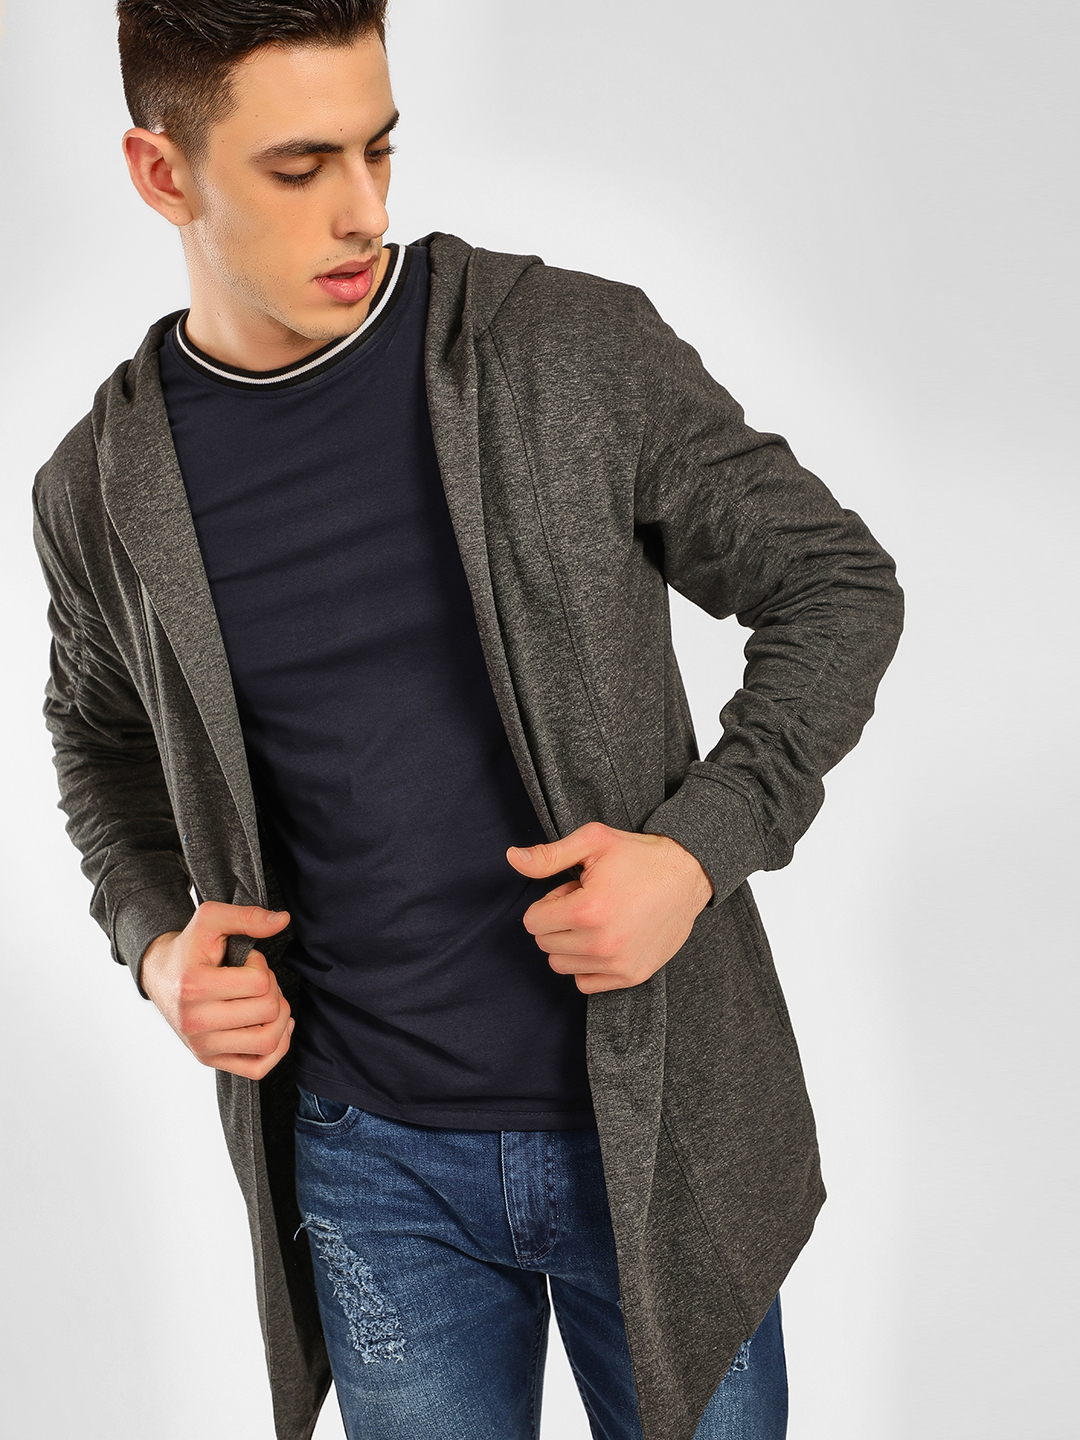 SKULT By Shahid Kapoor Grey Hooded Neck Waterfall Cardigan 1